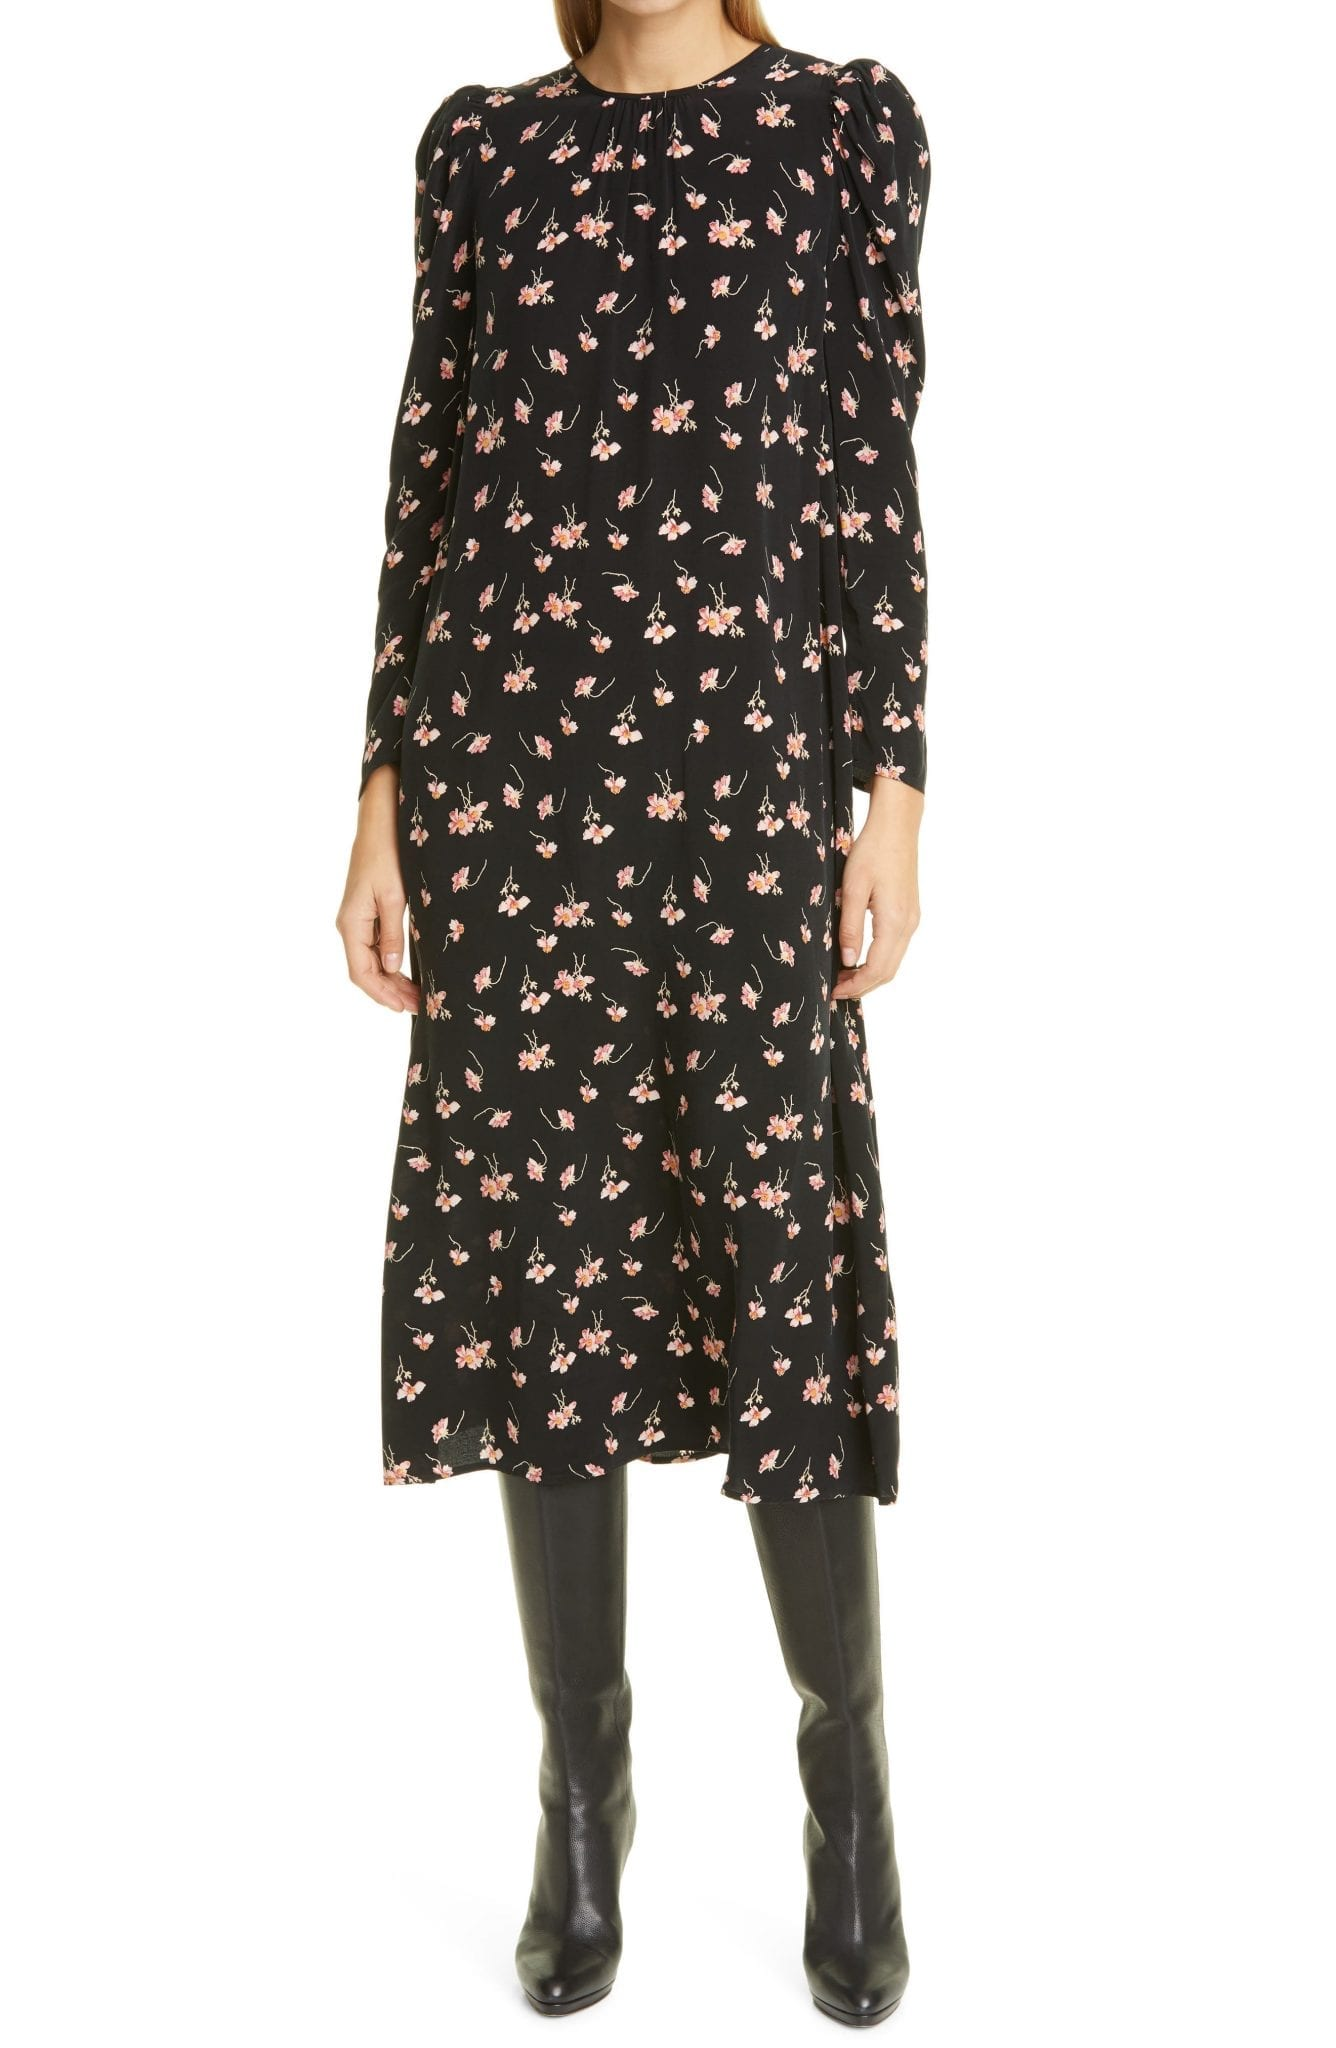 BYTIMO Everyday Floral Long Sleeve Shift Dress